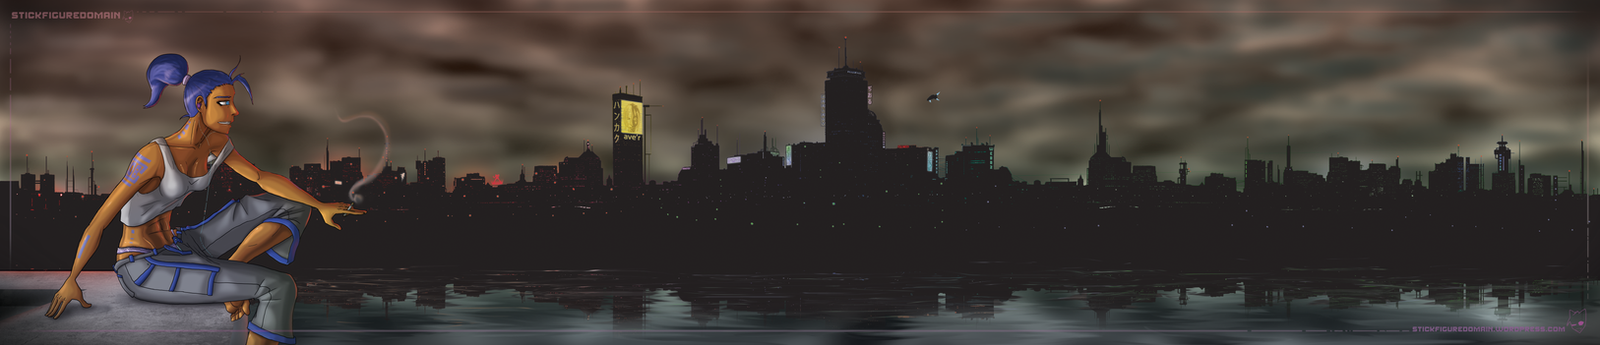 Cyber City Skyline by Stickfigure5000